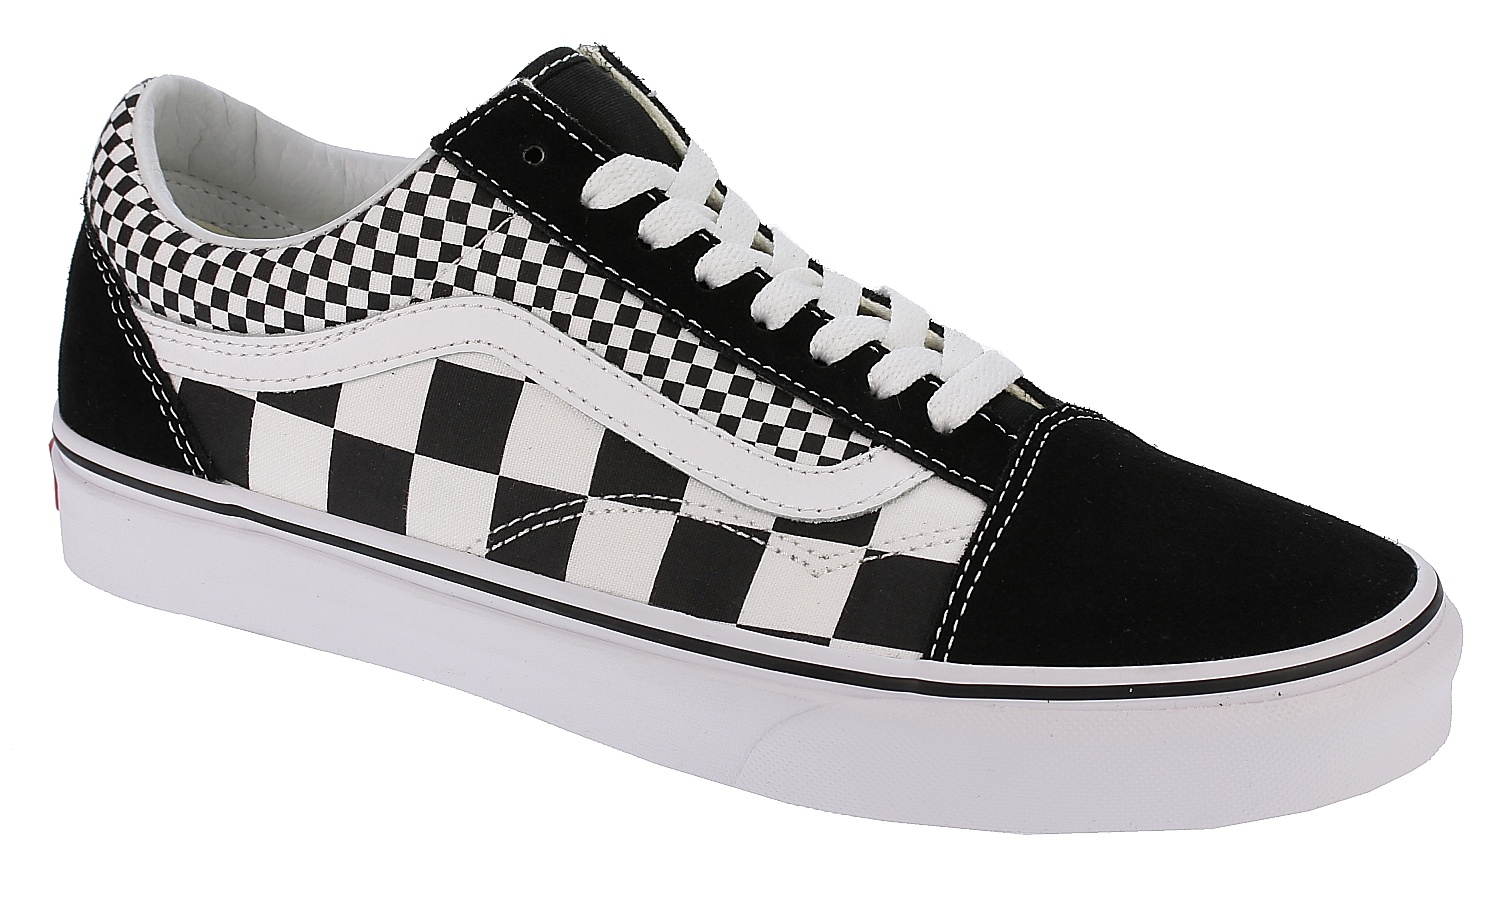 boty Vans Old Skool - Mix Checker/Black/True White - boty ...